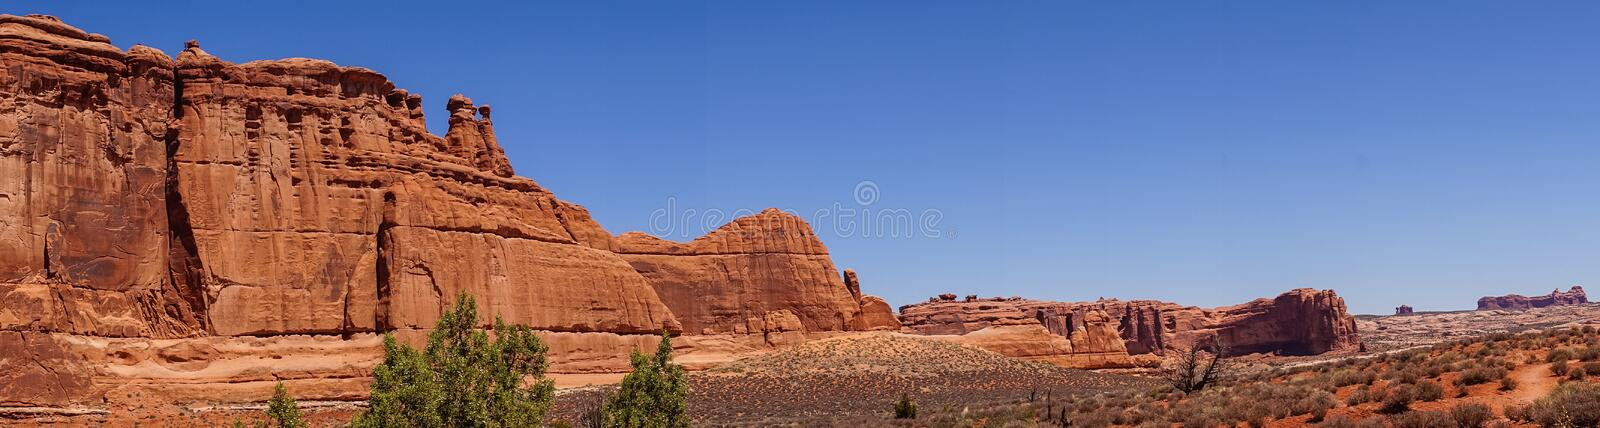 Panorama of the Arches National Park, Utah. Desert Southwest USA. Desert Moab, Utah, Southwest of the USA. Nature of the Arches National Park. Erosion of stone stock image